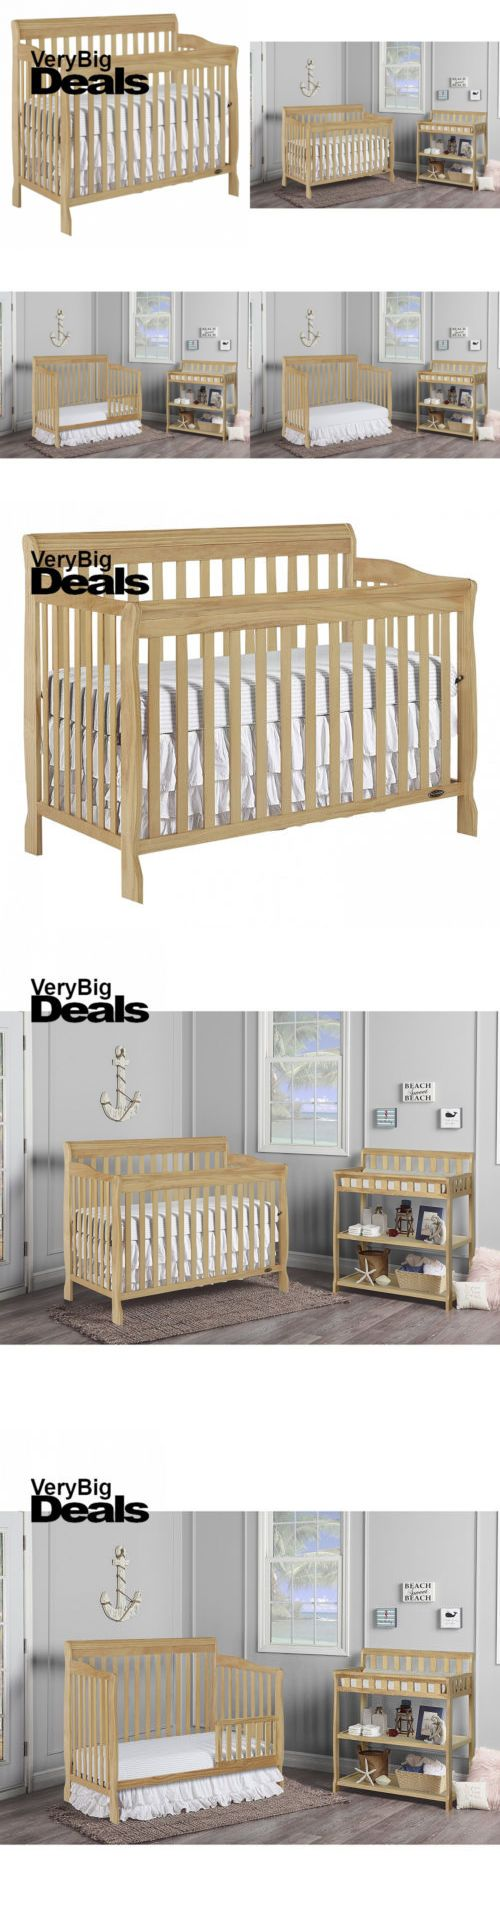 Cribs 2985: New 5 In 1 Convertible Baby Crib Toddler Nursery Bed Side Dream On Me Pick Color -> BUY IT NOW ONLY: $151.74 on eBay!